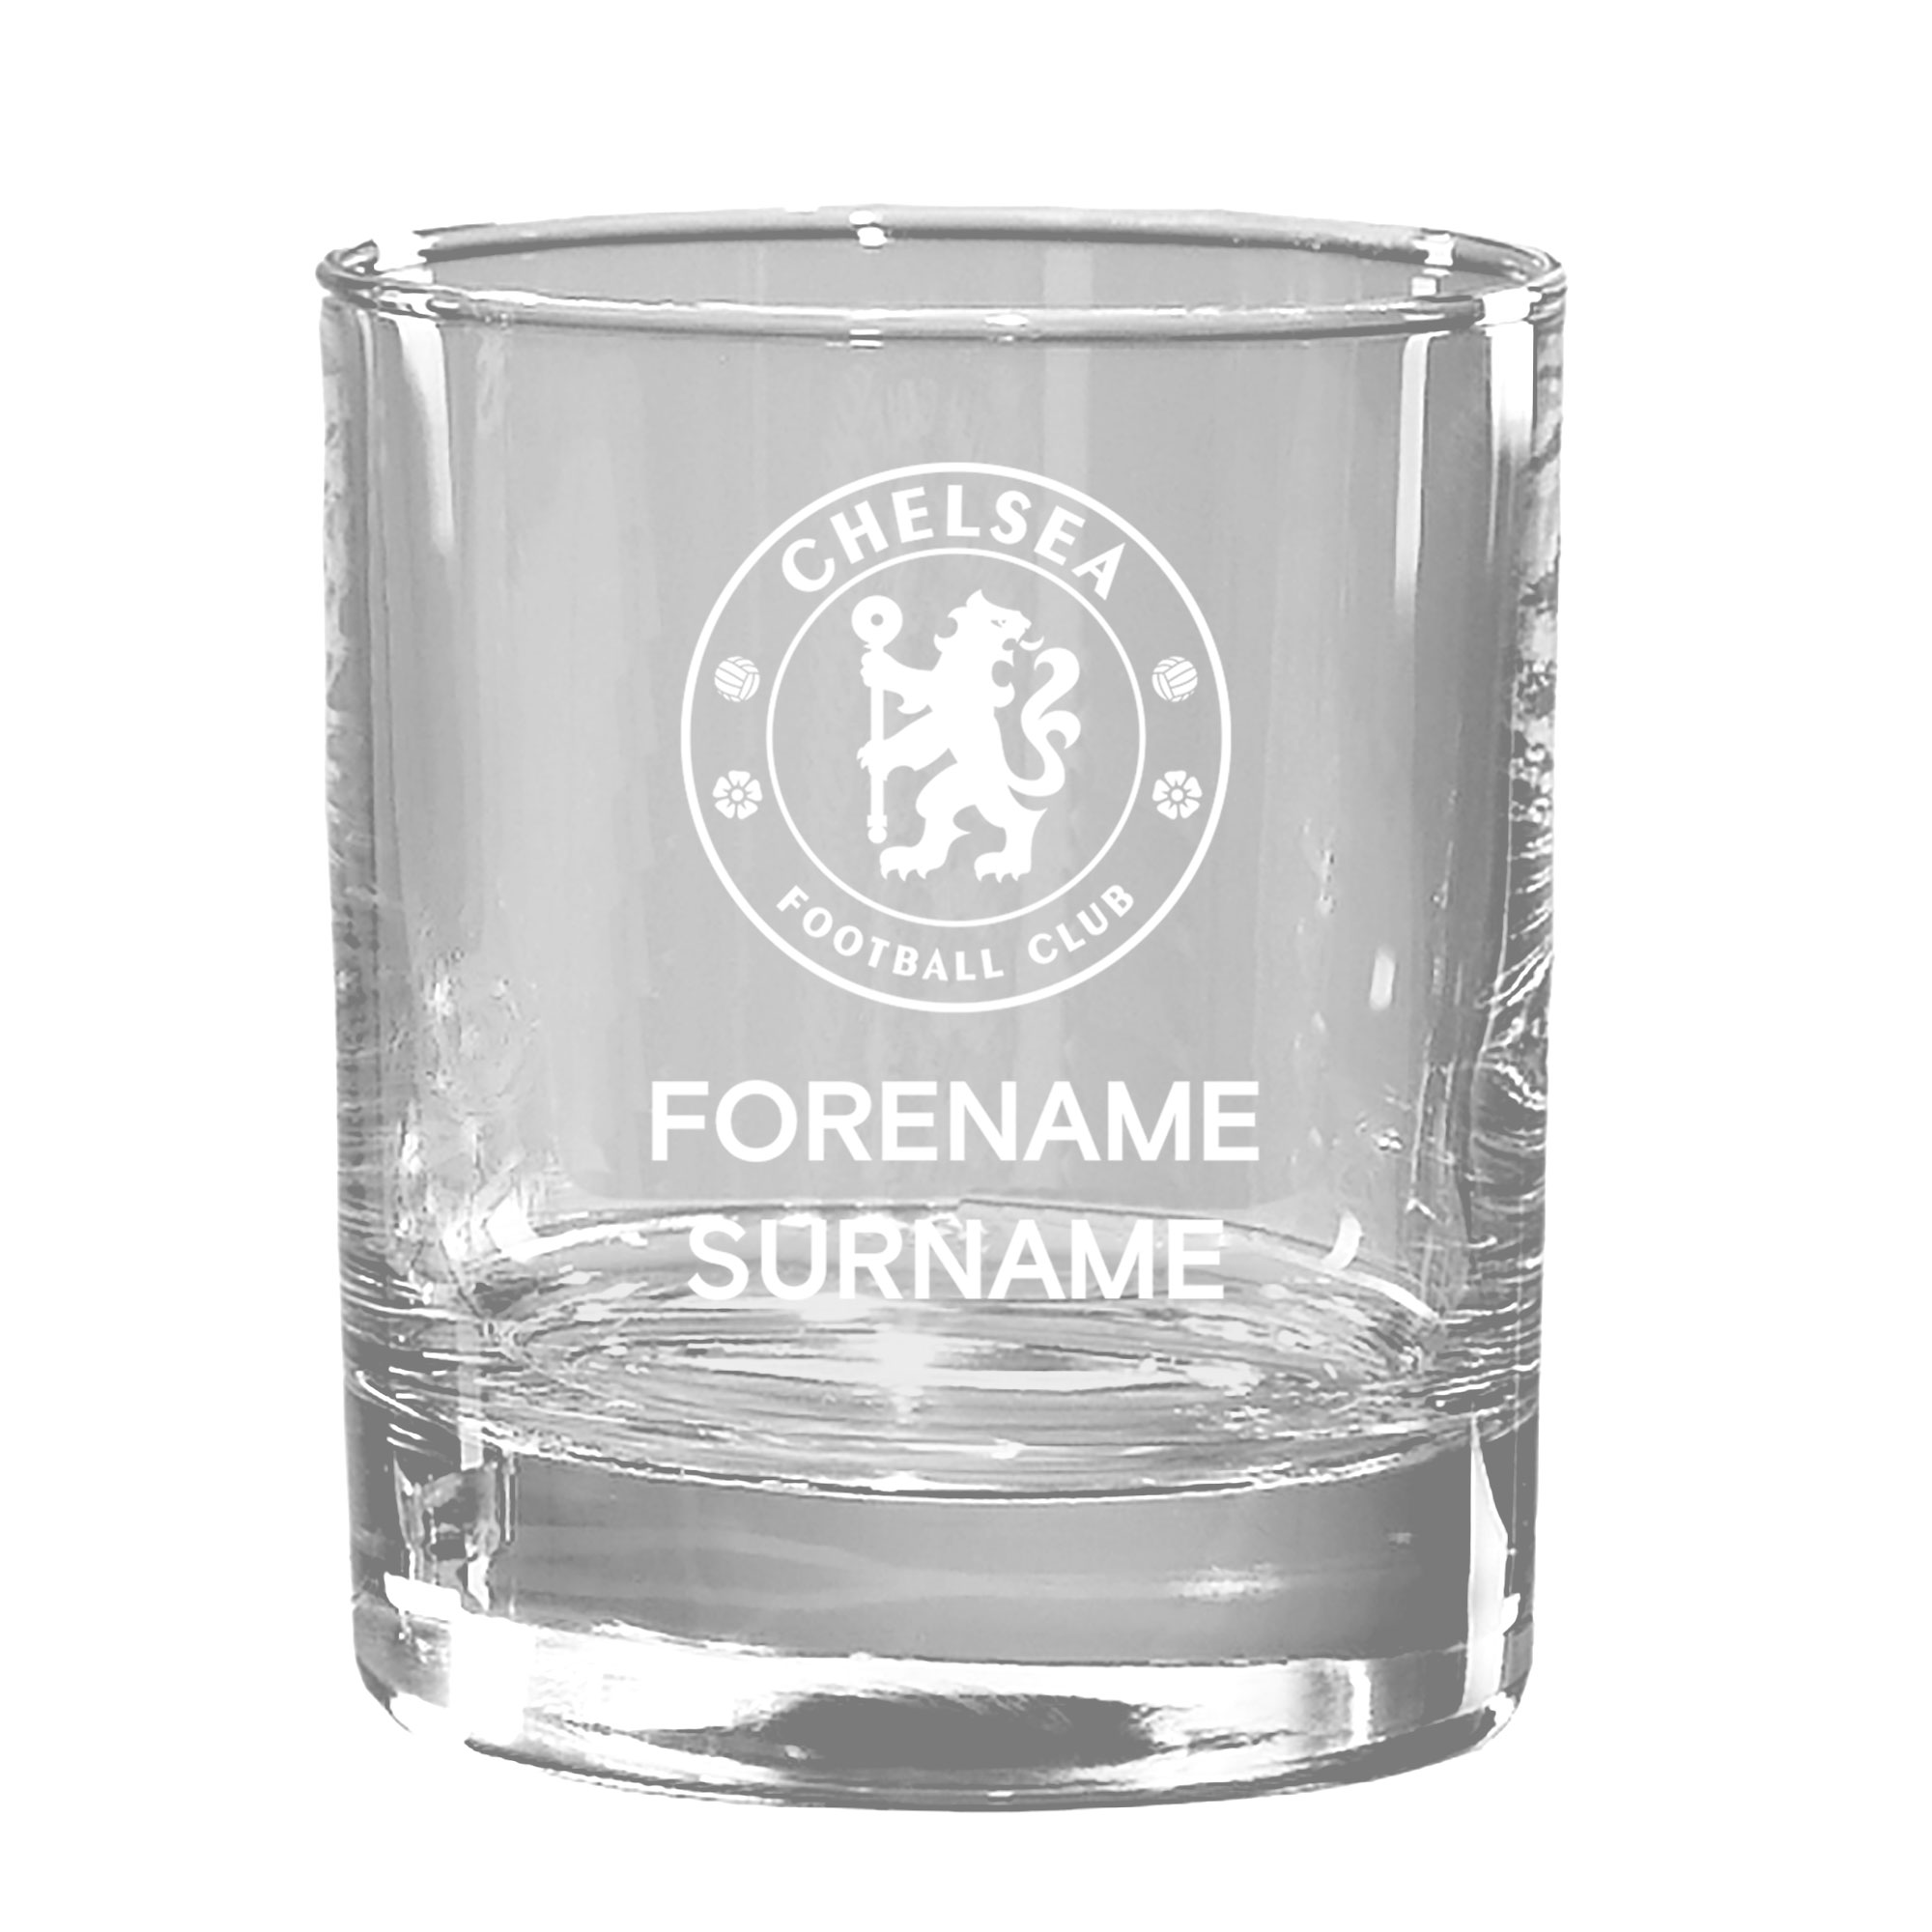 Chelsea FC Personalised Crest Bar Line Old Fashioned Whisky Tumbler